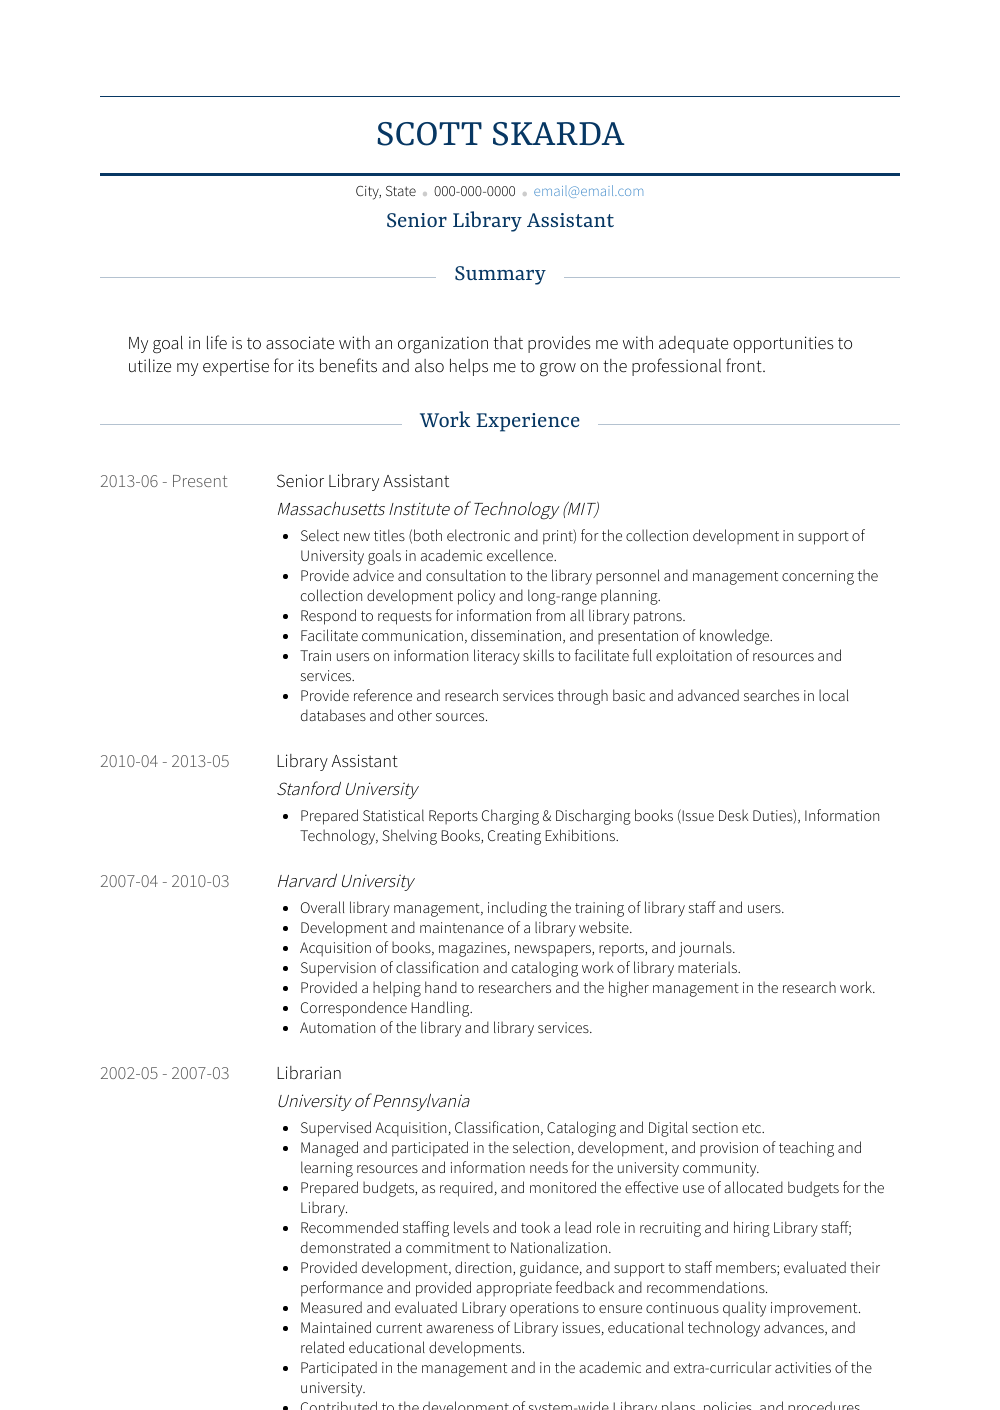 Library Assistant Resume Samples Templates Visualcv